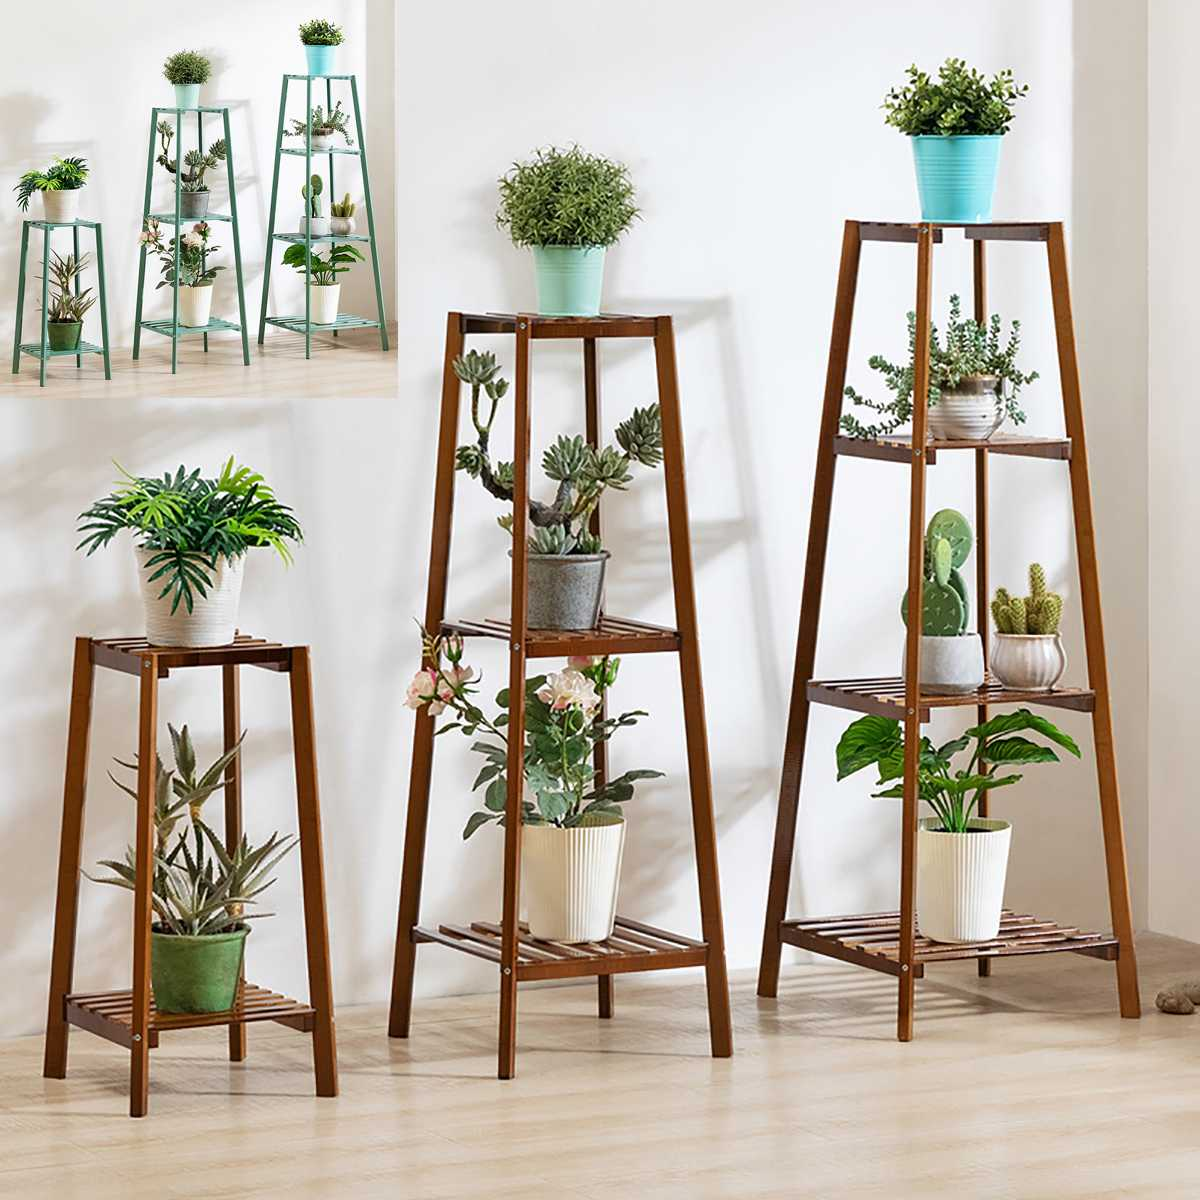 4 Layers Simplicity Wood Stand For Plants Landing Type Light Extravagant Multi-storey